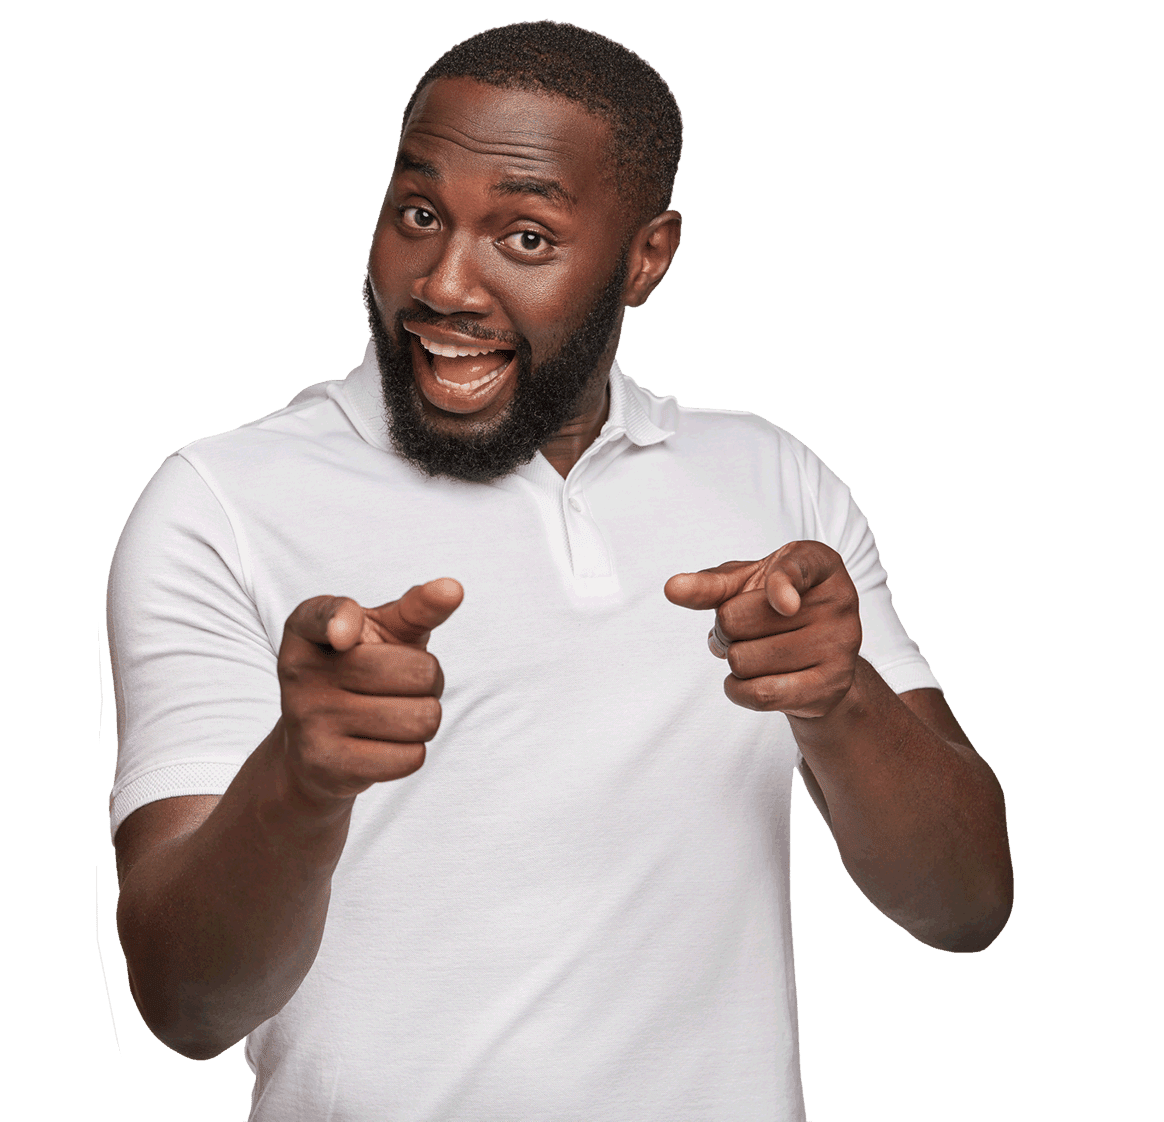 positive-guy-makes-finger-gun-gesture-smile-positively-express-his-choice - 1164x1122-min